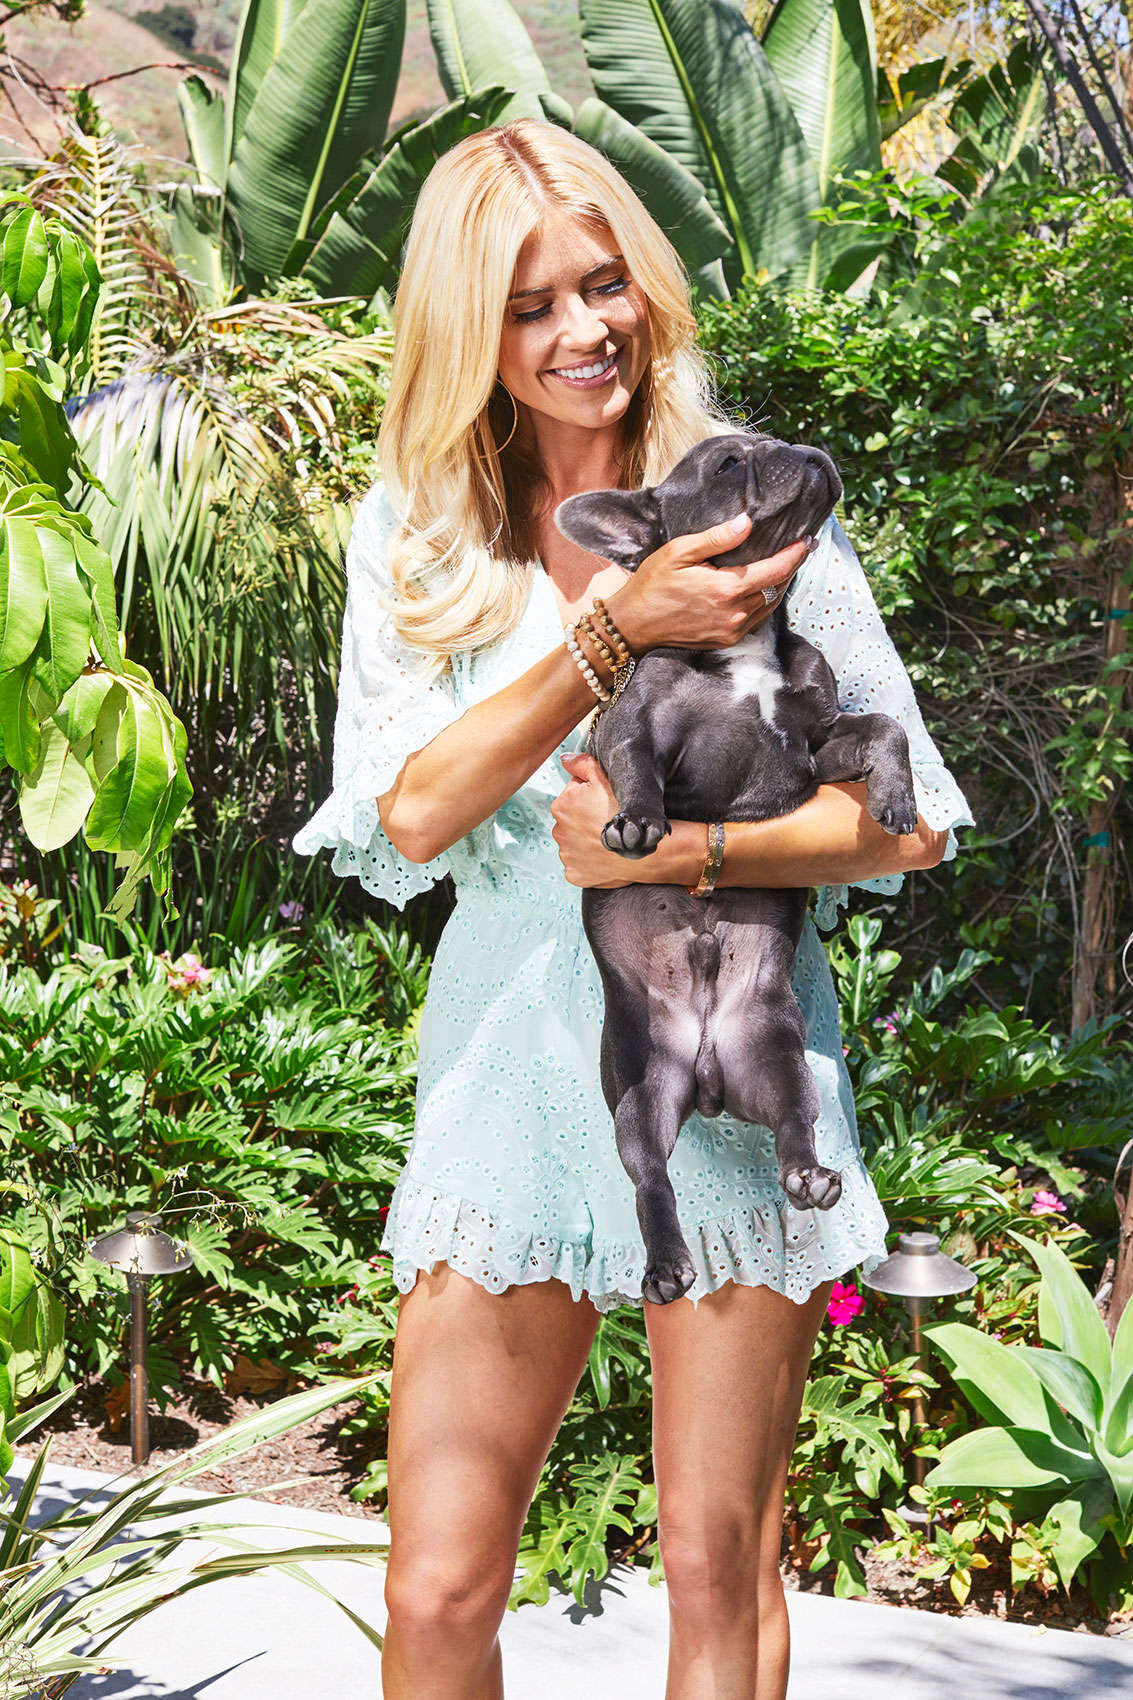 Christina El Moussa for Good Housekeeping. Kim Genevieve Los Angeles Portrait Photographer